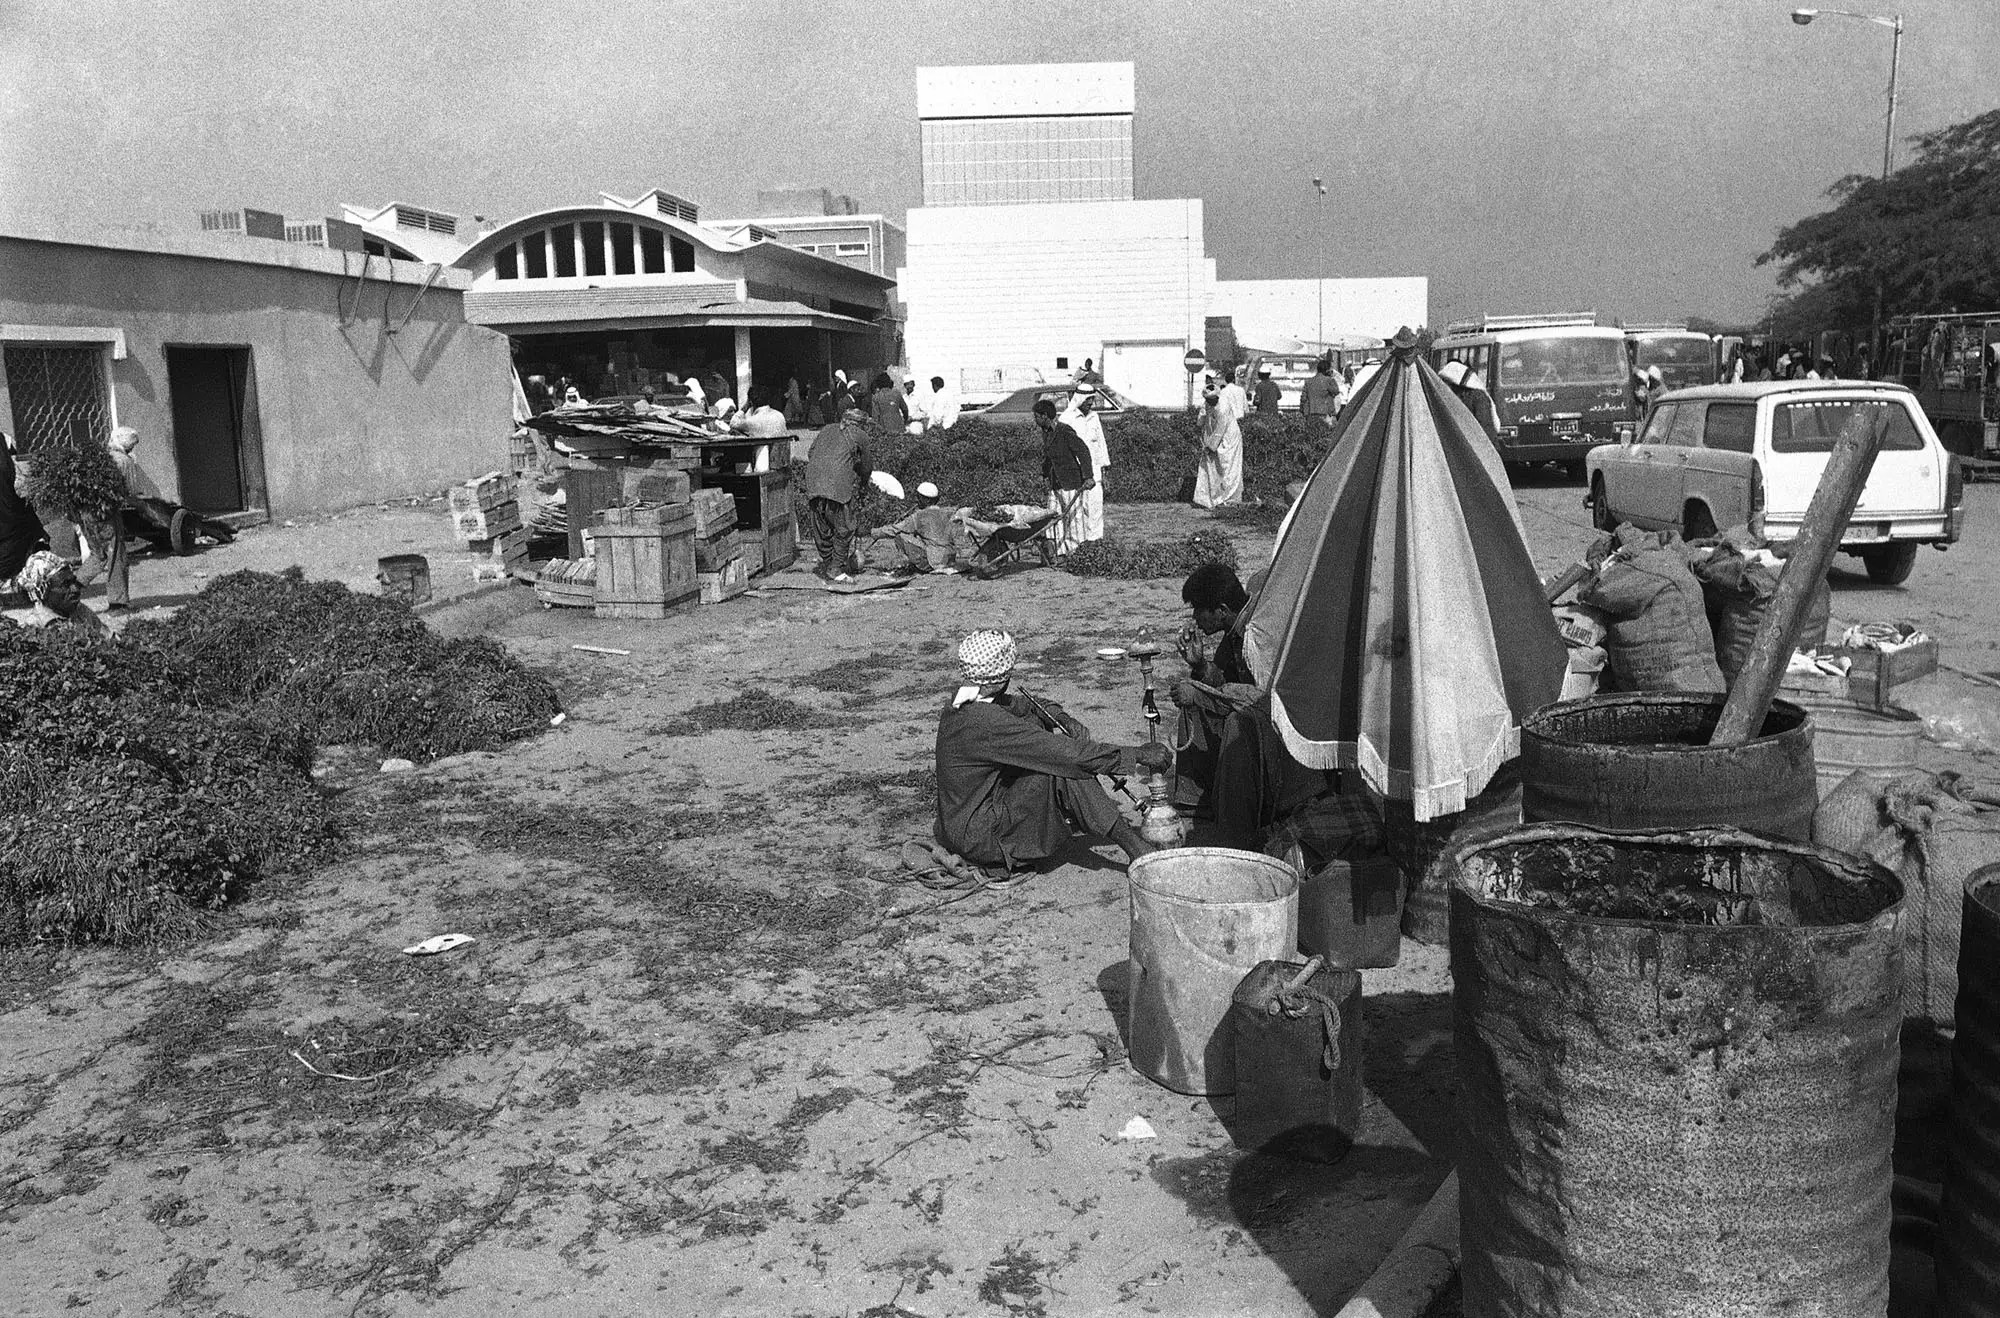 This was part of Doha's open-air market in 1977. Piles of garbage and loiterers smoking hookah were not an uncommon site.